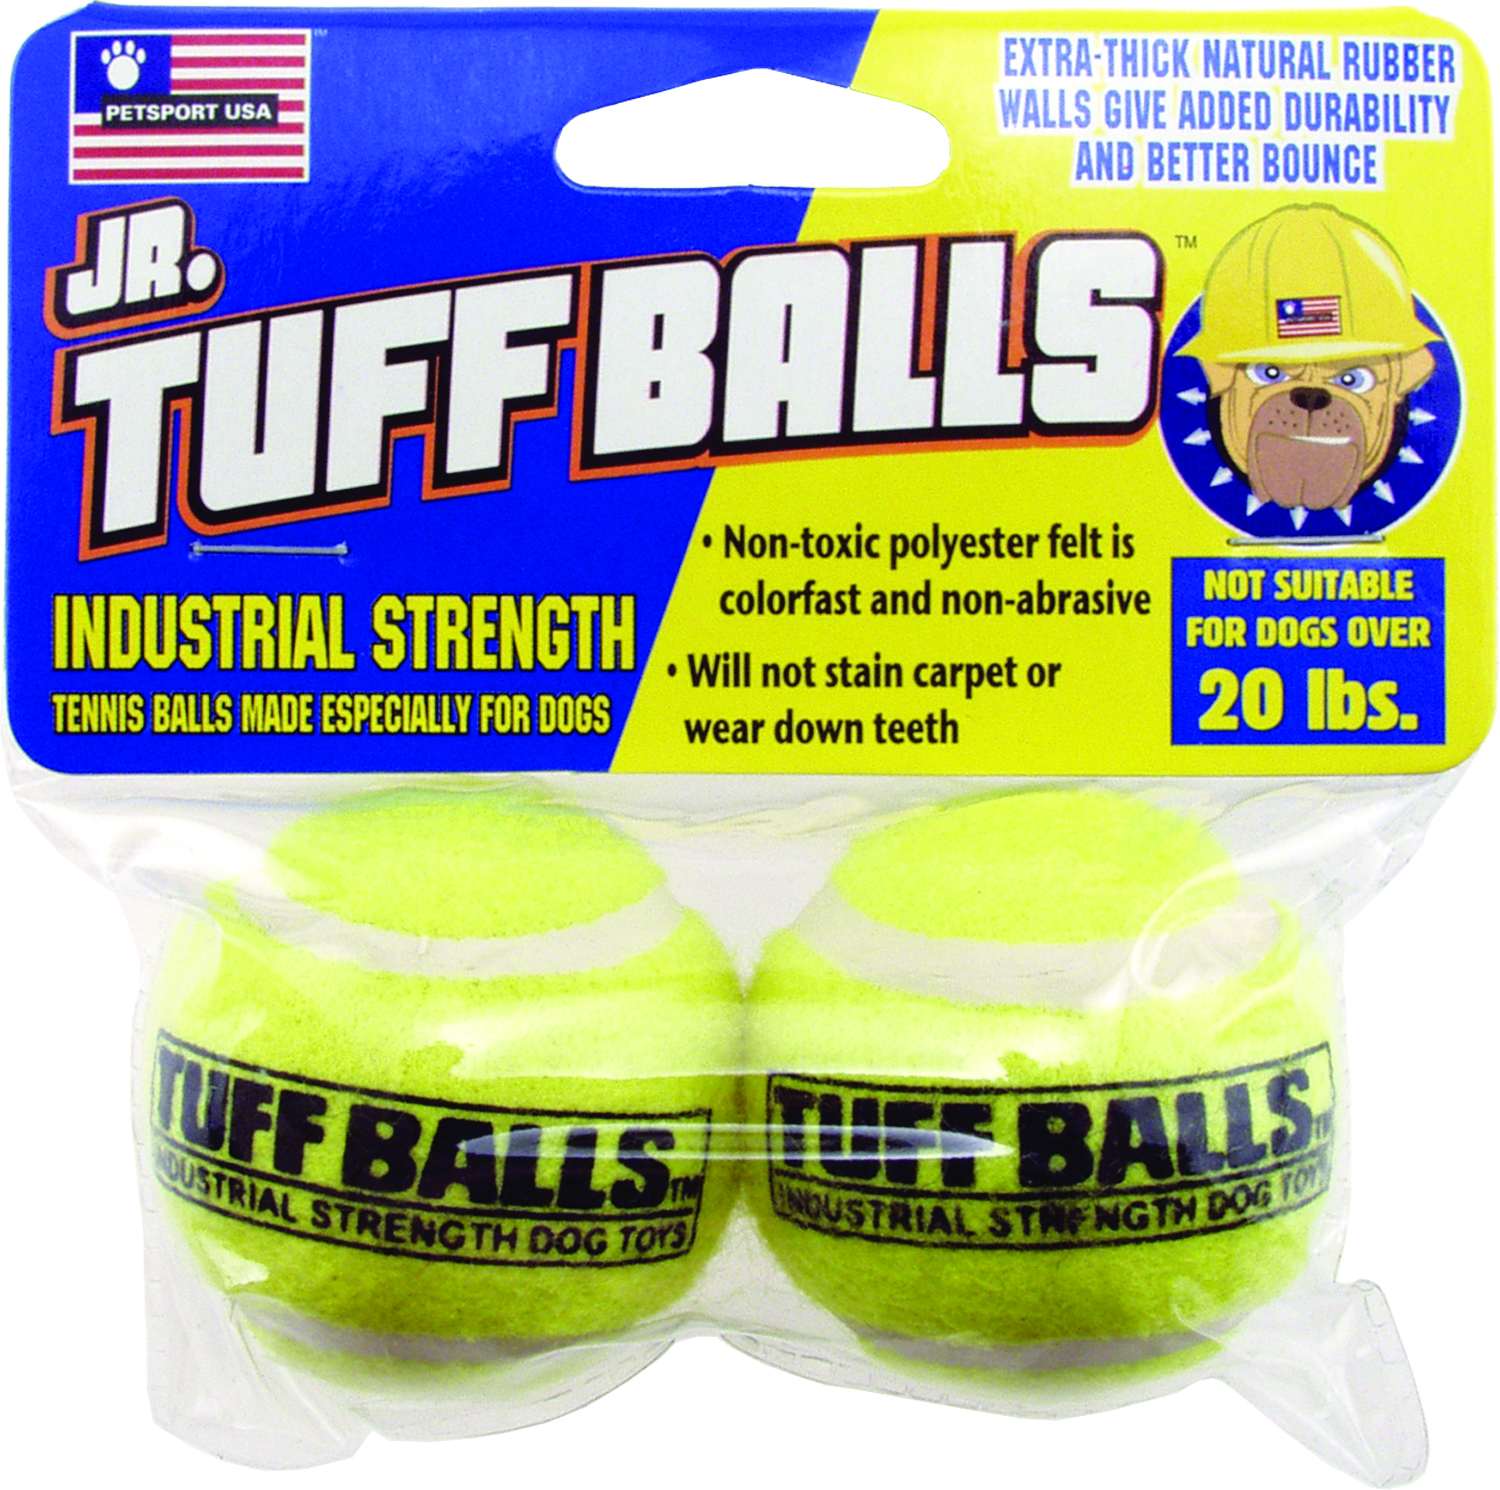 PETSPORT USA Jr Tuff Balls